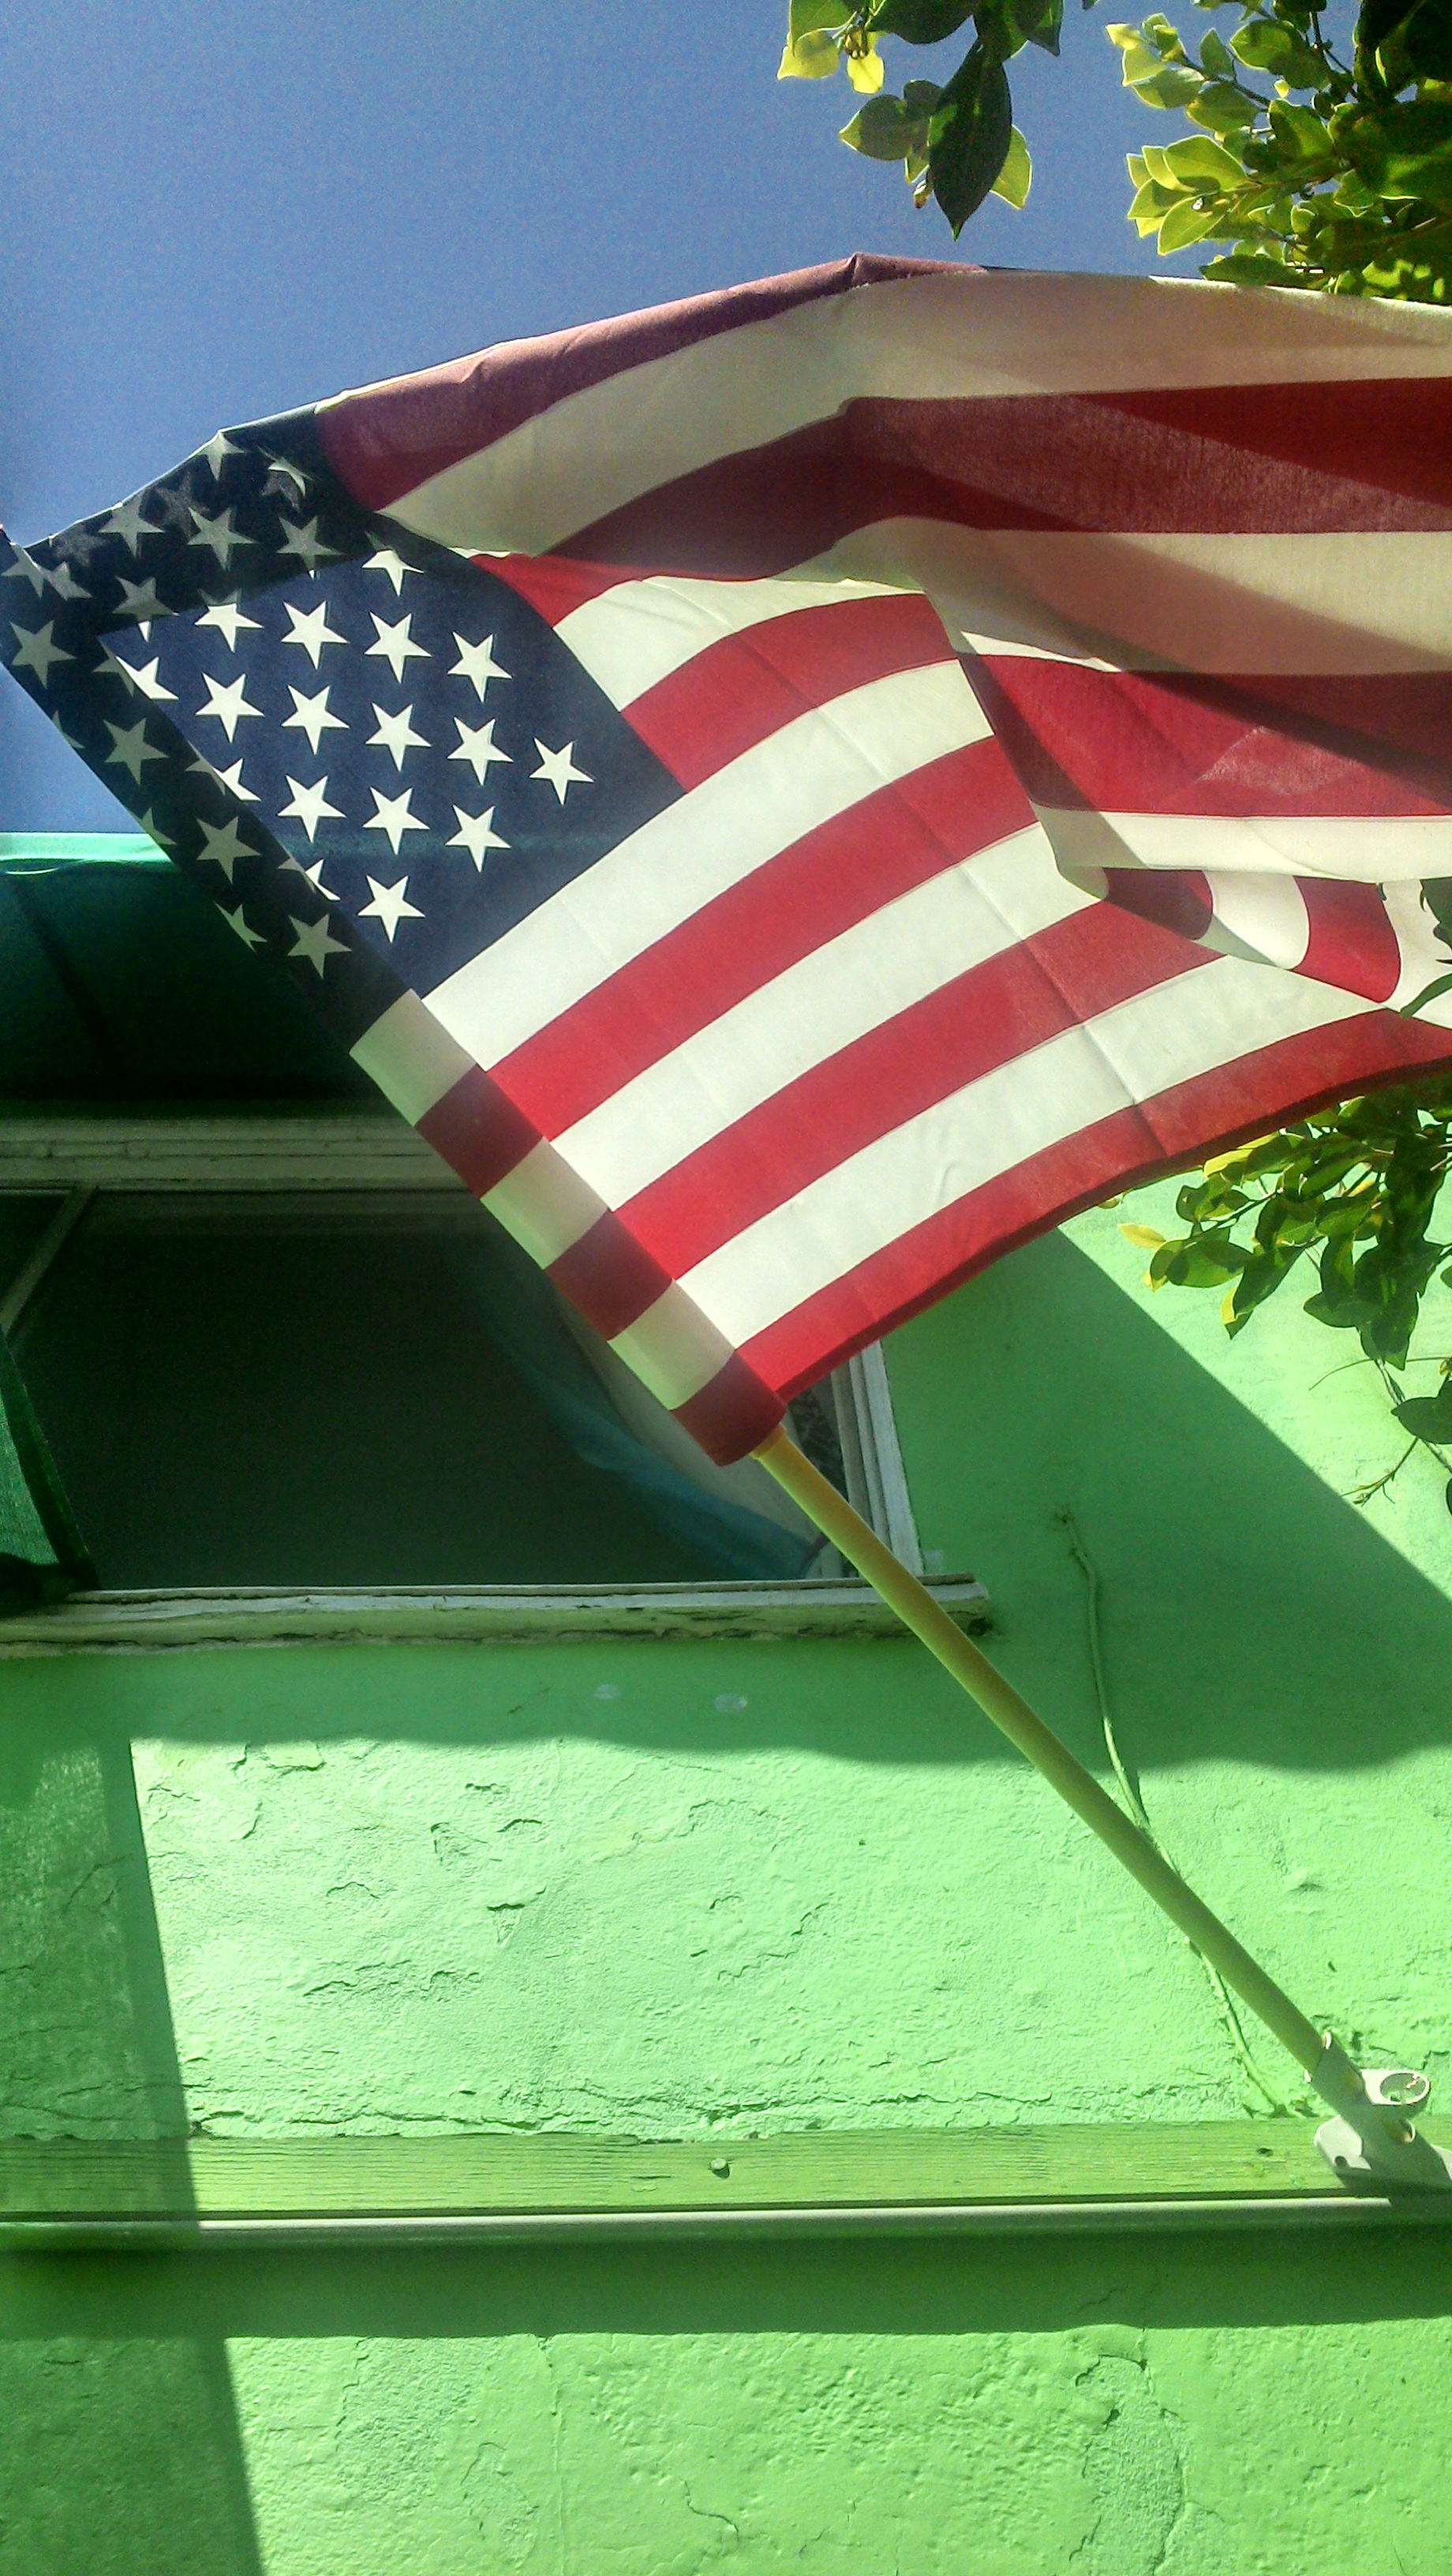 Stars and stripes on green at Patrick's Roadhouse, PCH